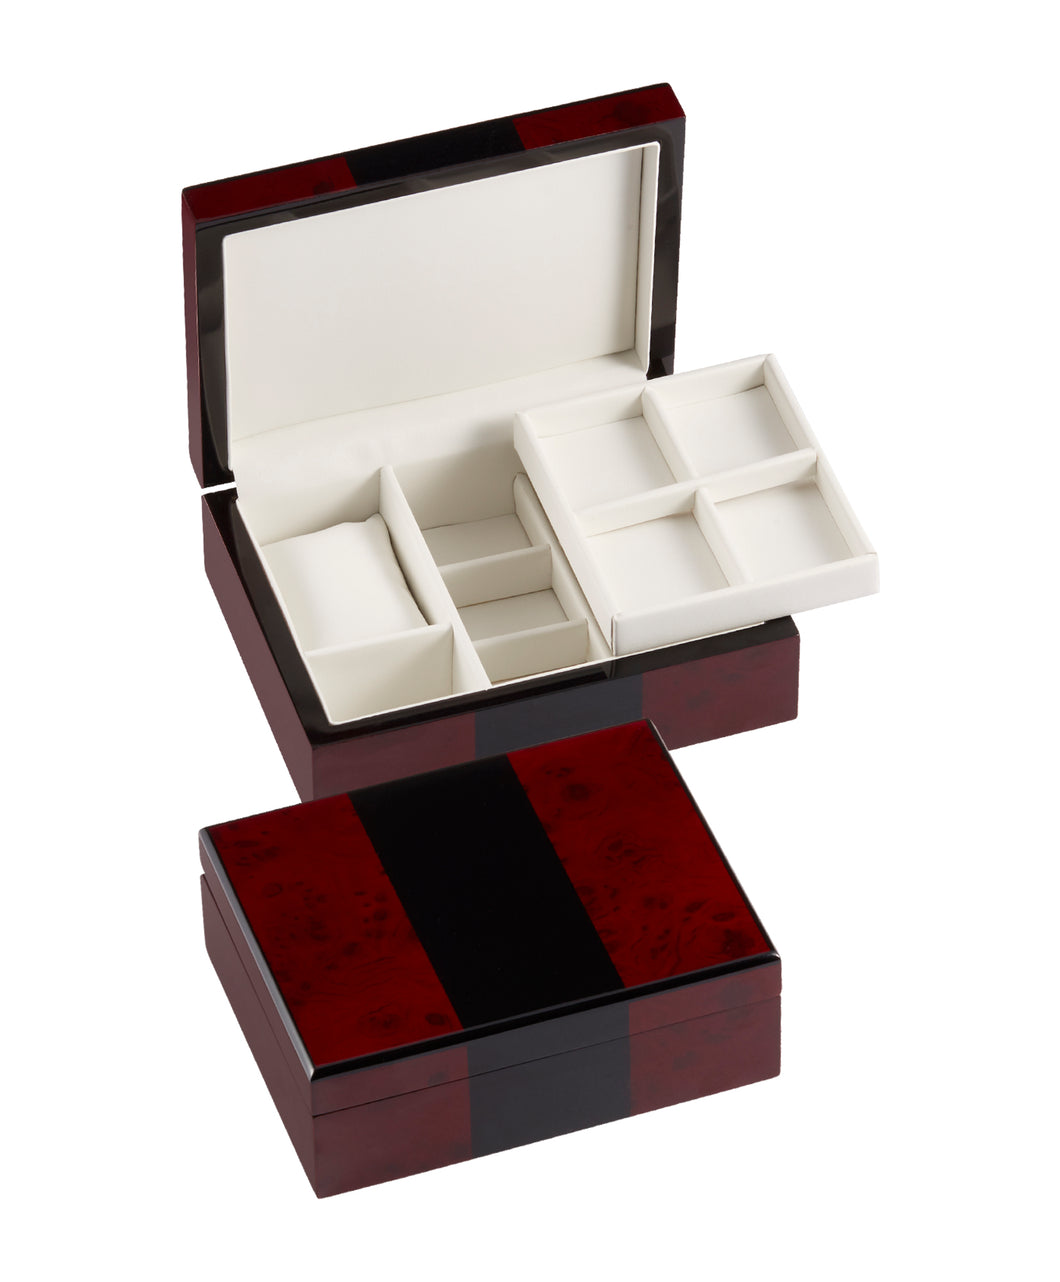 Jewellery Box - Small to Medium Sized